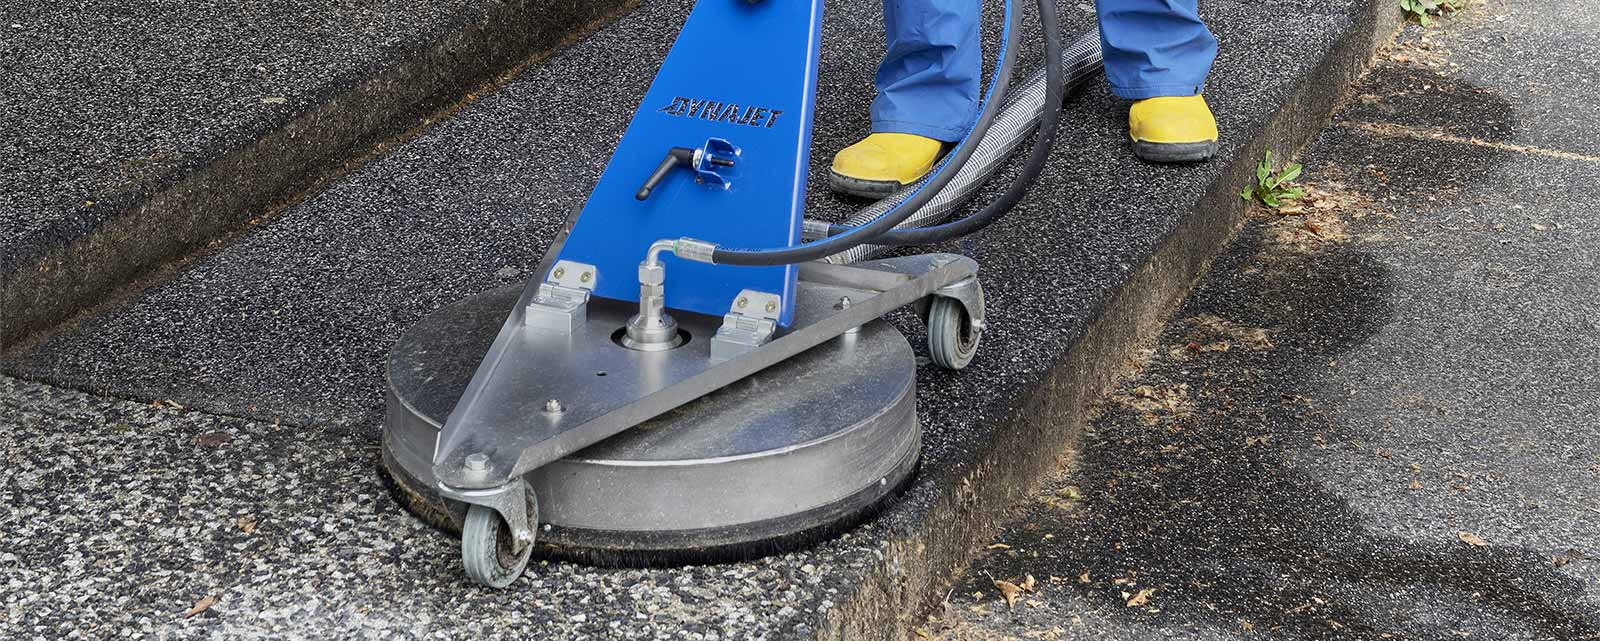 DYNAJET has developed professional surface cleaners for different types of use to clean large surfaces thoroughly and quickly